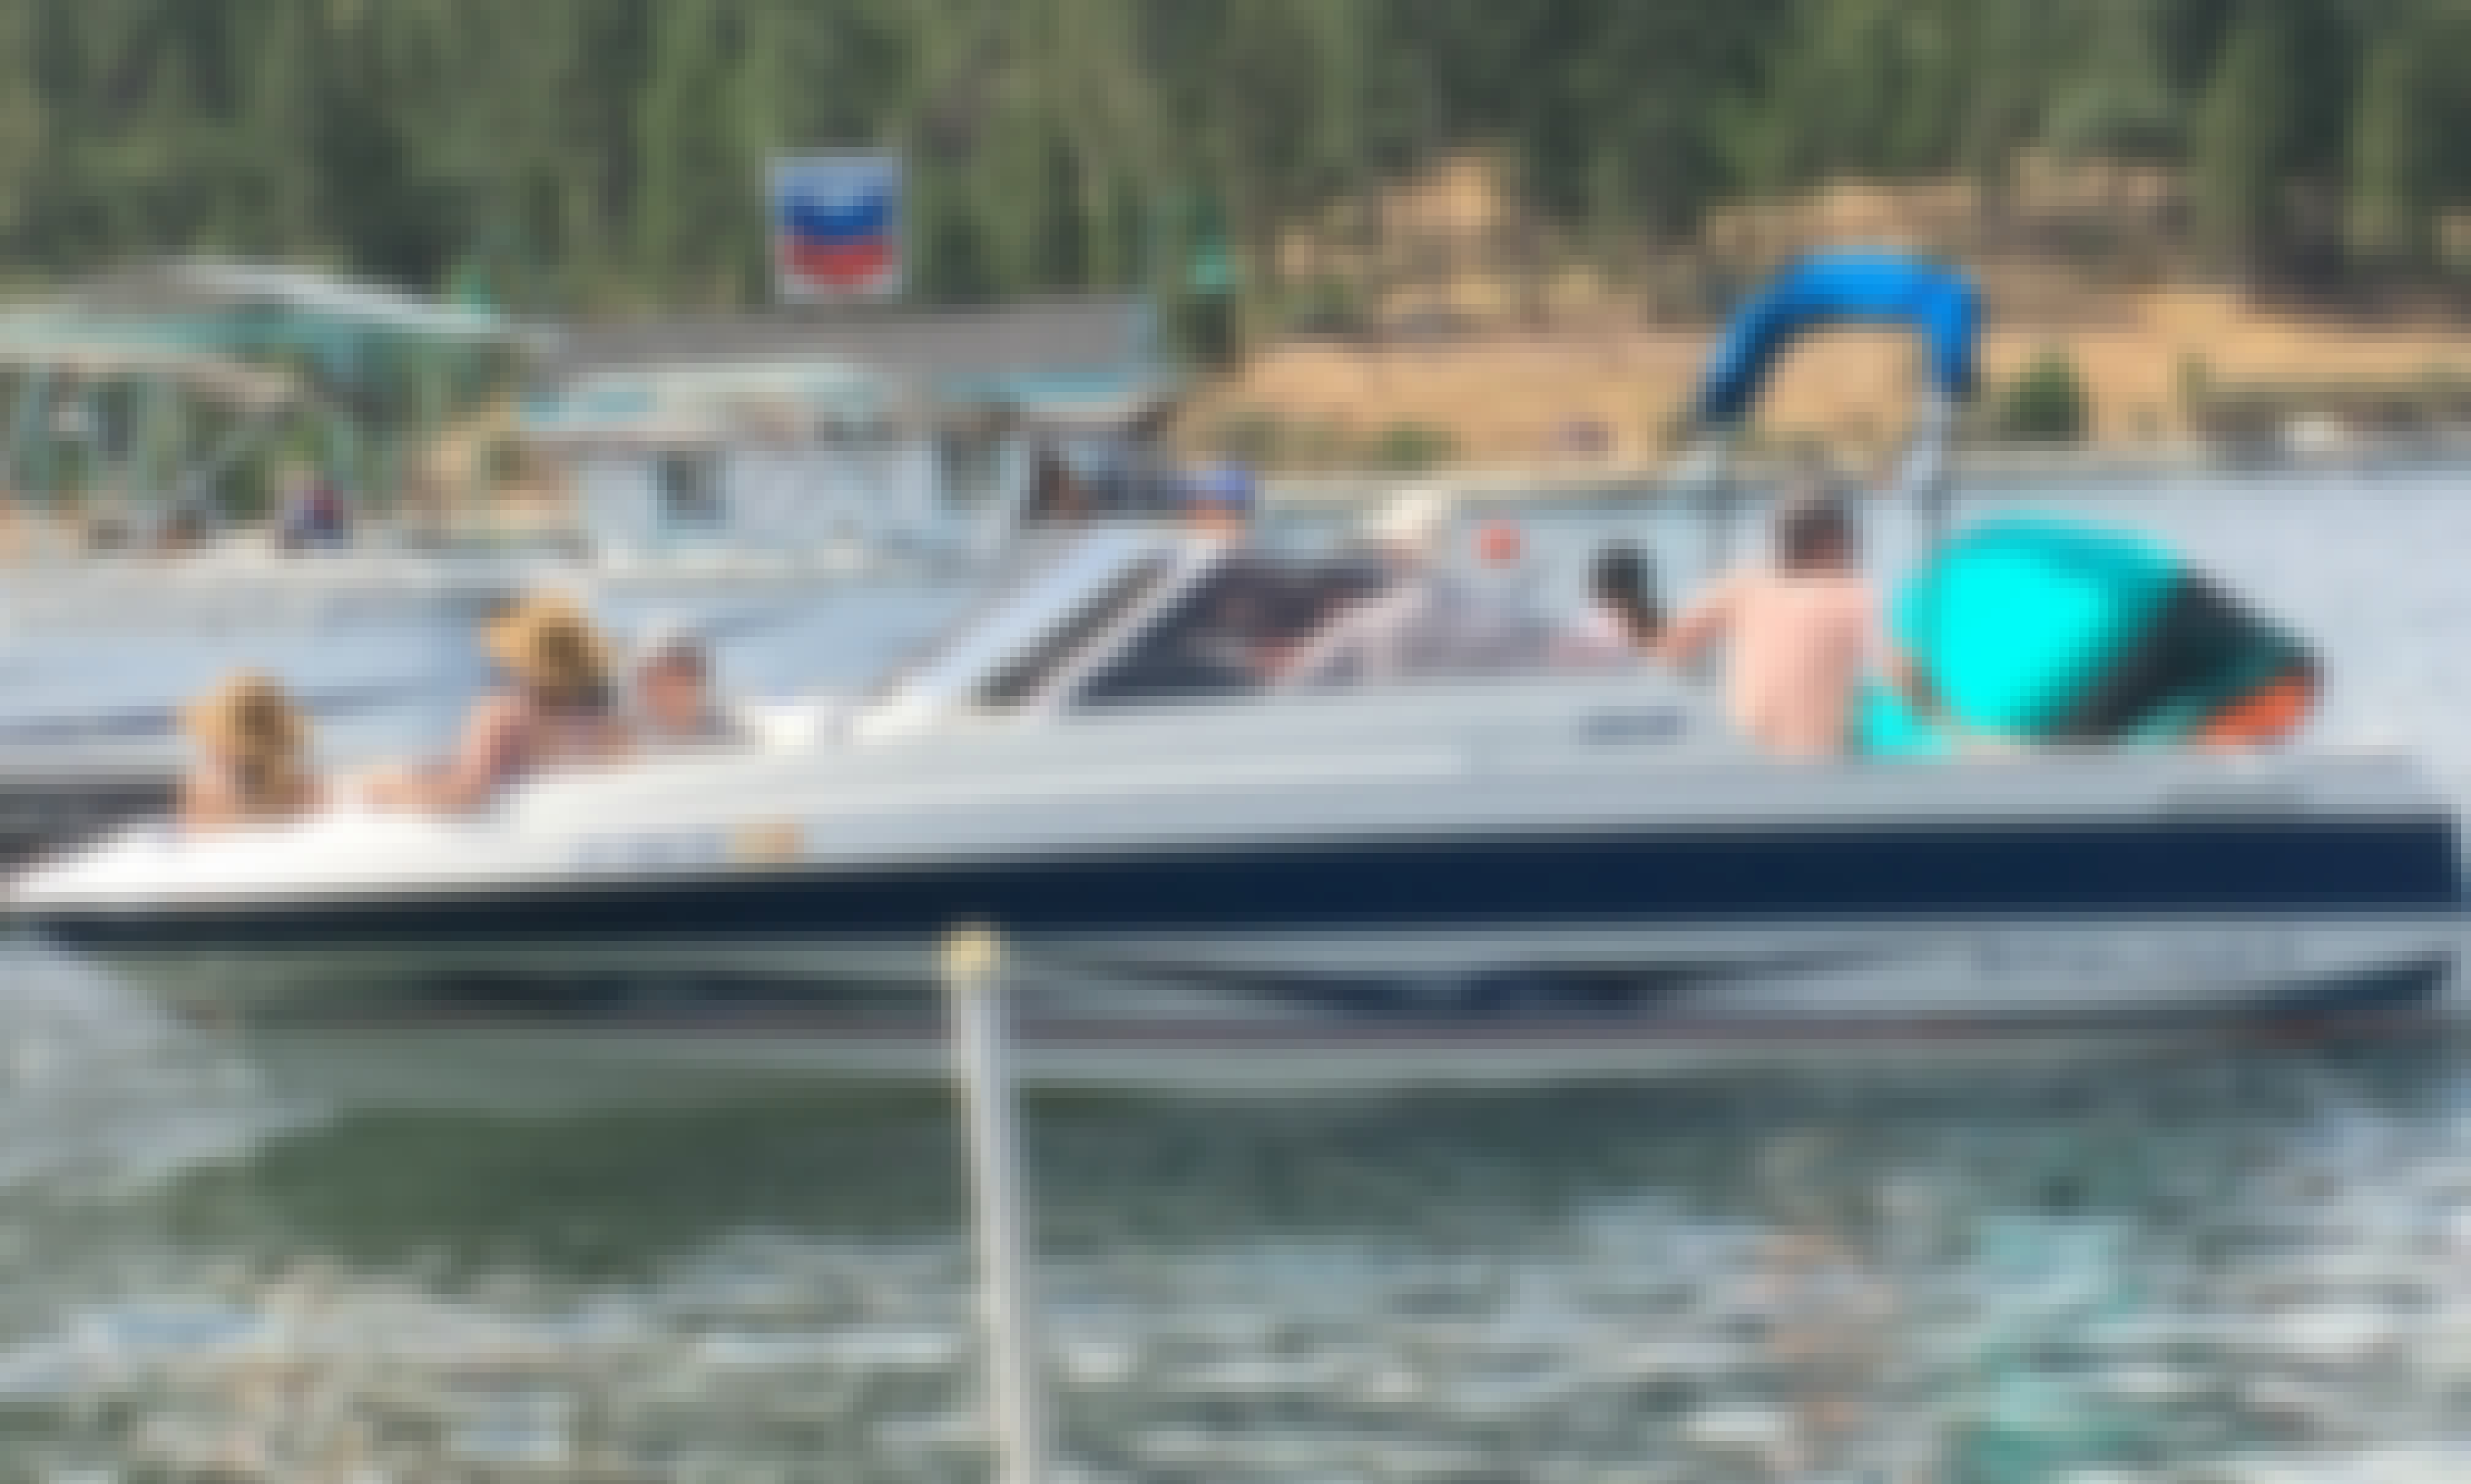 Bayliner 22' Open Bow Family Boat for Rent Bass Lake, CA (2 Day Minimum)